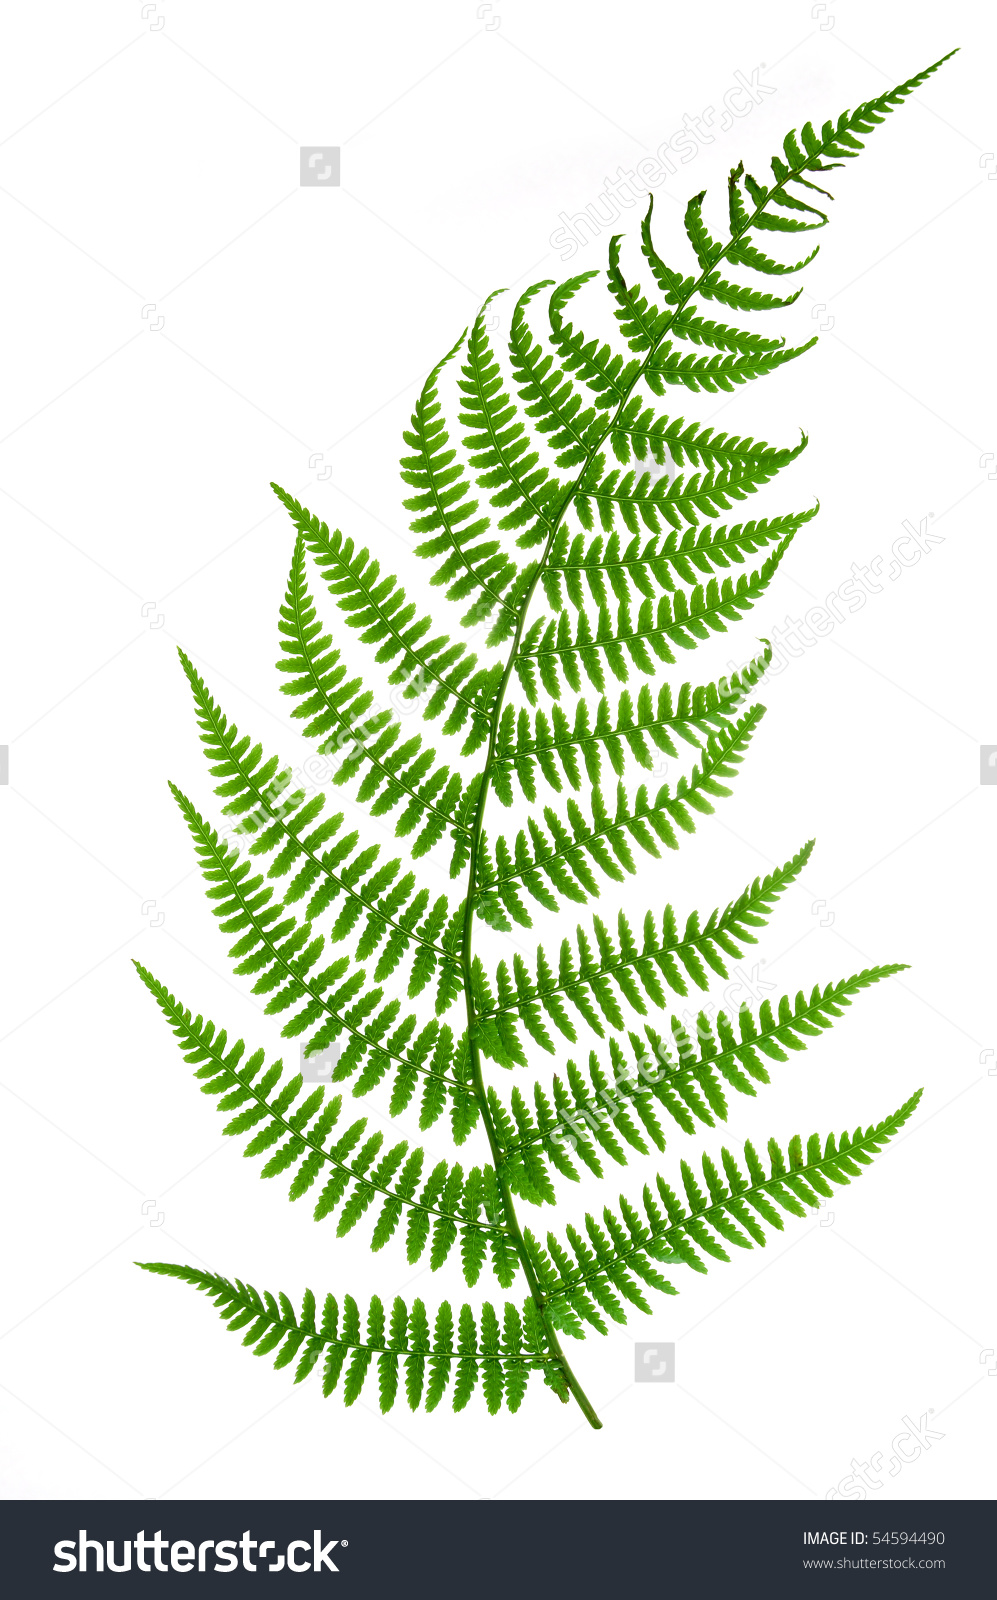 Fern HD wallpapers, Desktop wallpaper - most viewed